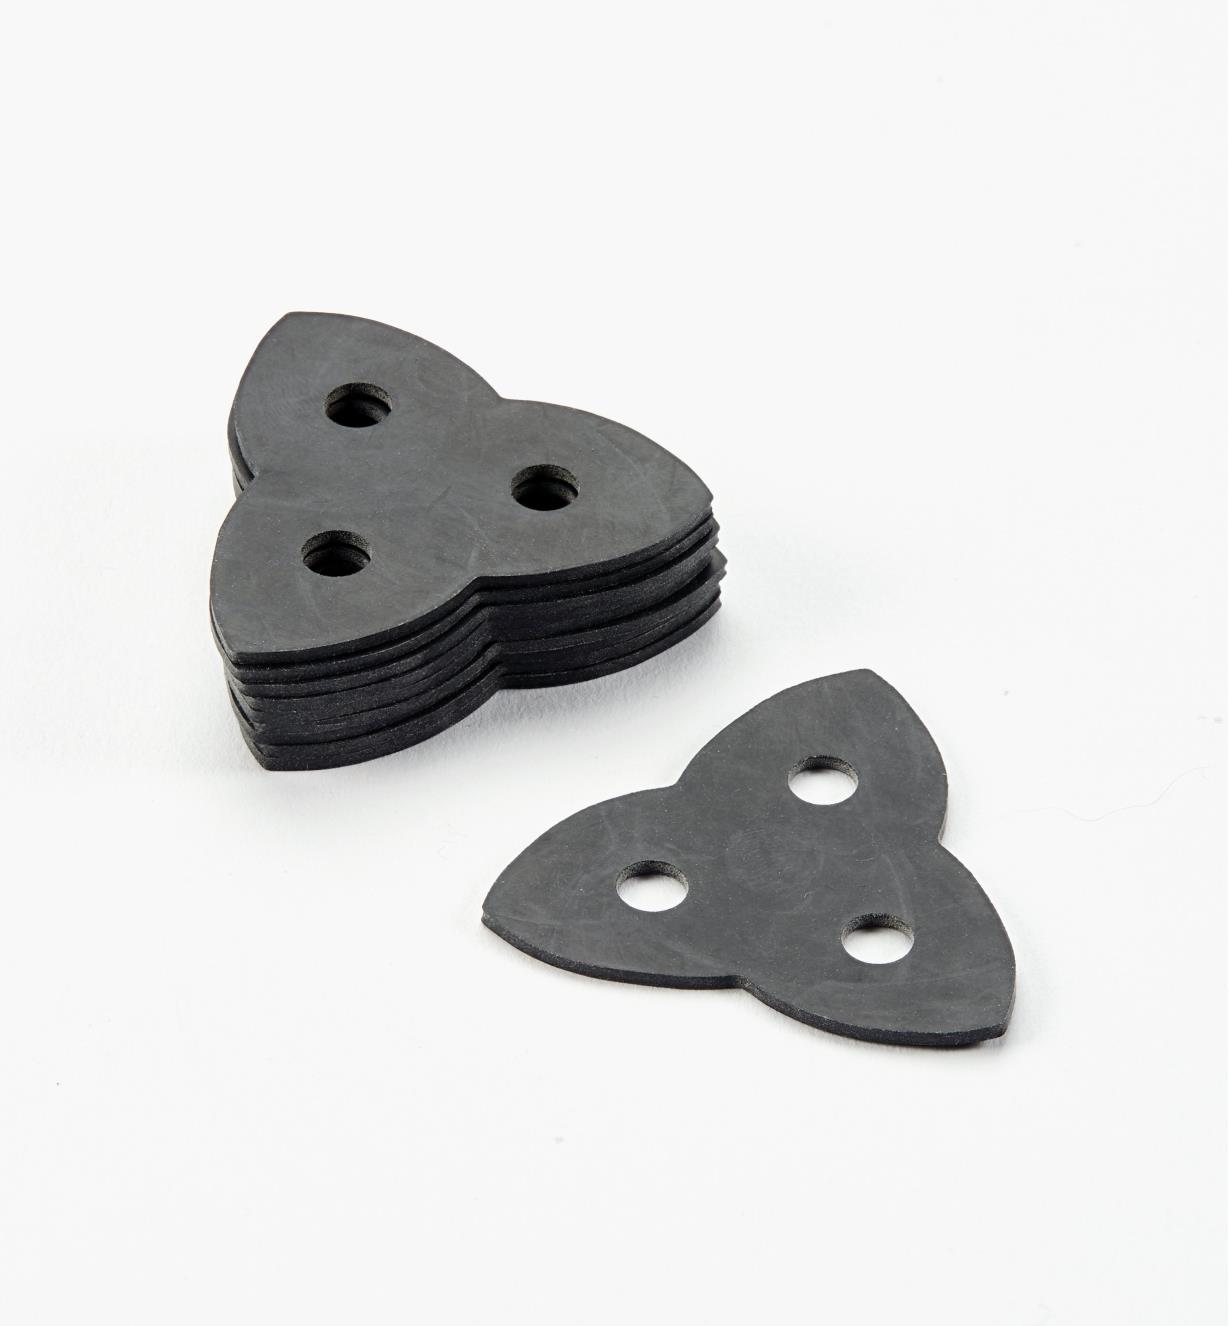 EA237 - Silicone Staking Connectors, pkg. of 10